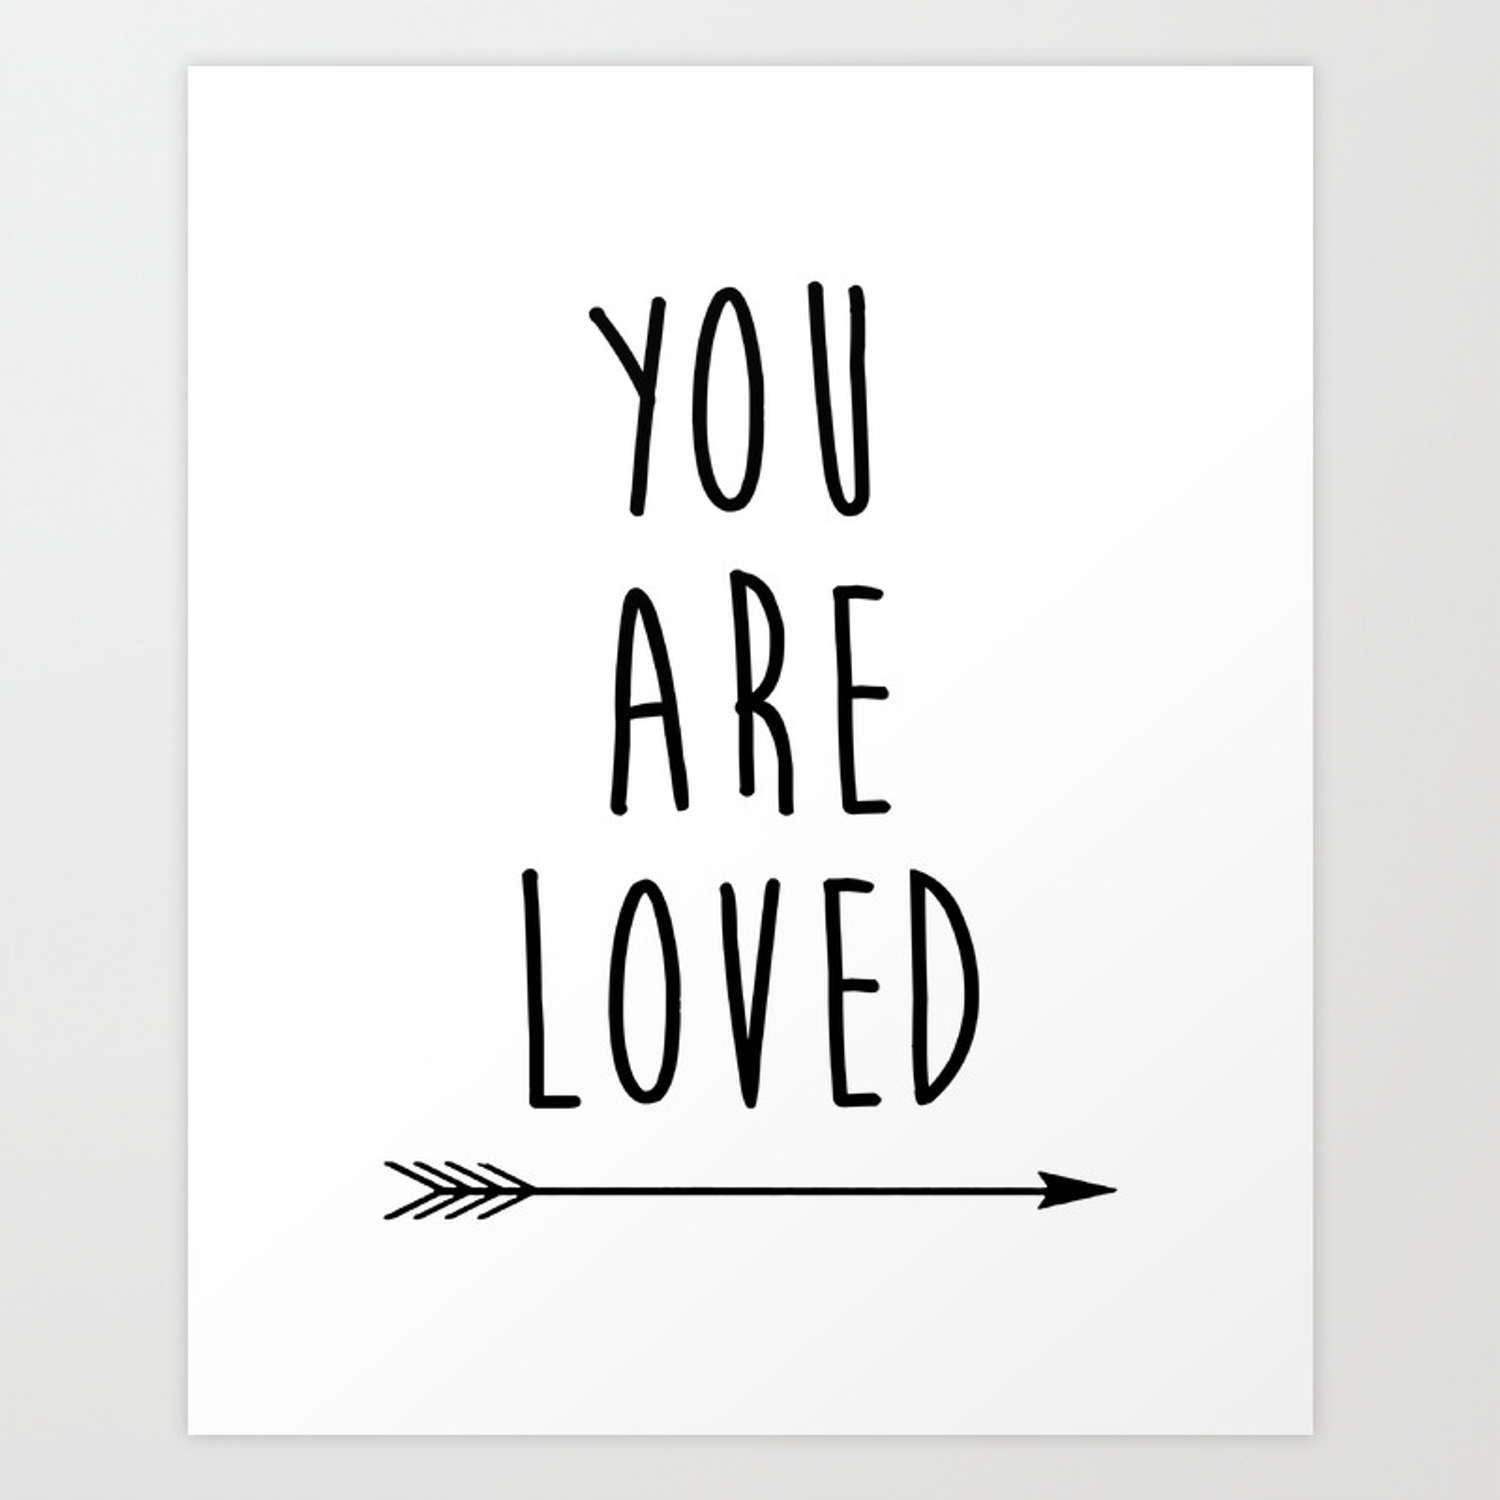 graphic regarding Arrow Printable named Oneself Are Savored Printable Artwork, Nursery Artwork, Black and White Artwork, Arrow Artwork, Oneself are Therefore Relished Phrase Artwork, Artwork Print